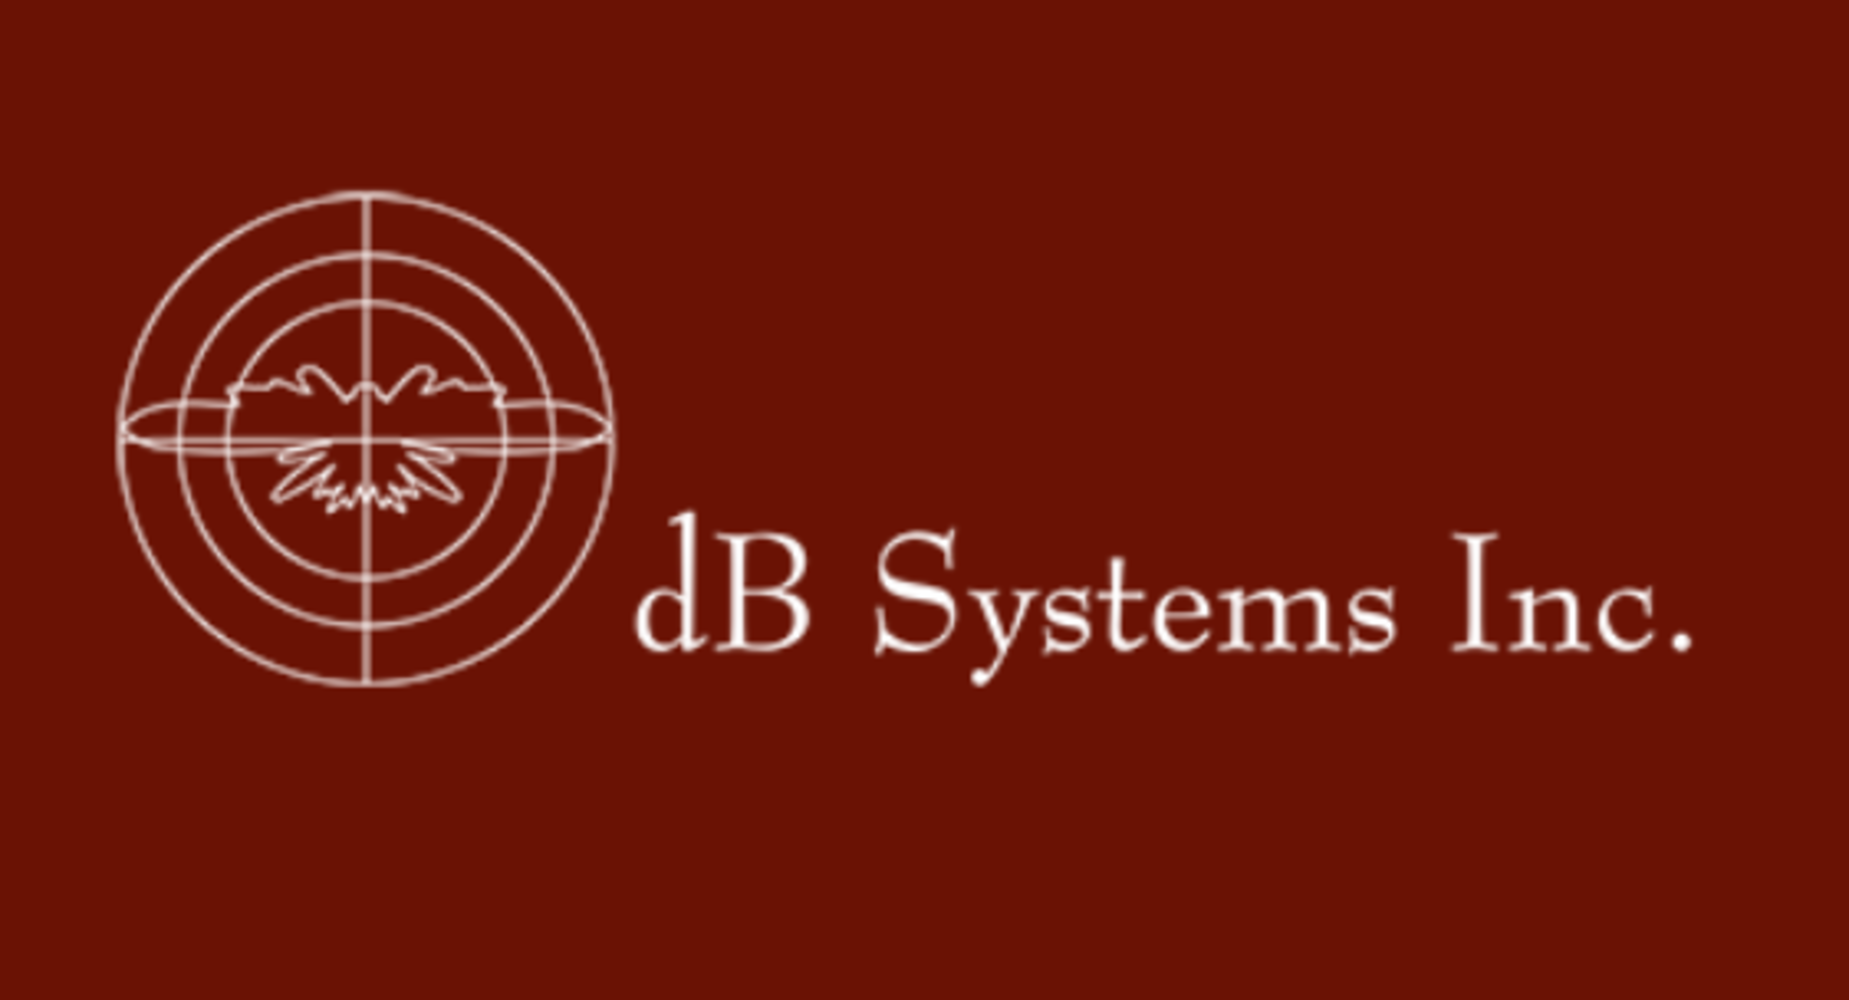 dB Systems Inc. Test & Measurement, Lab Equipment, Medical & Various Assets (Large Lots)